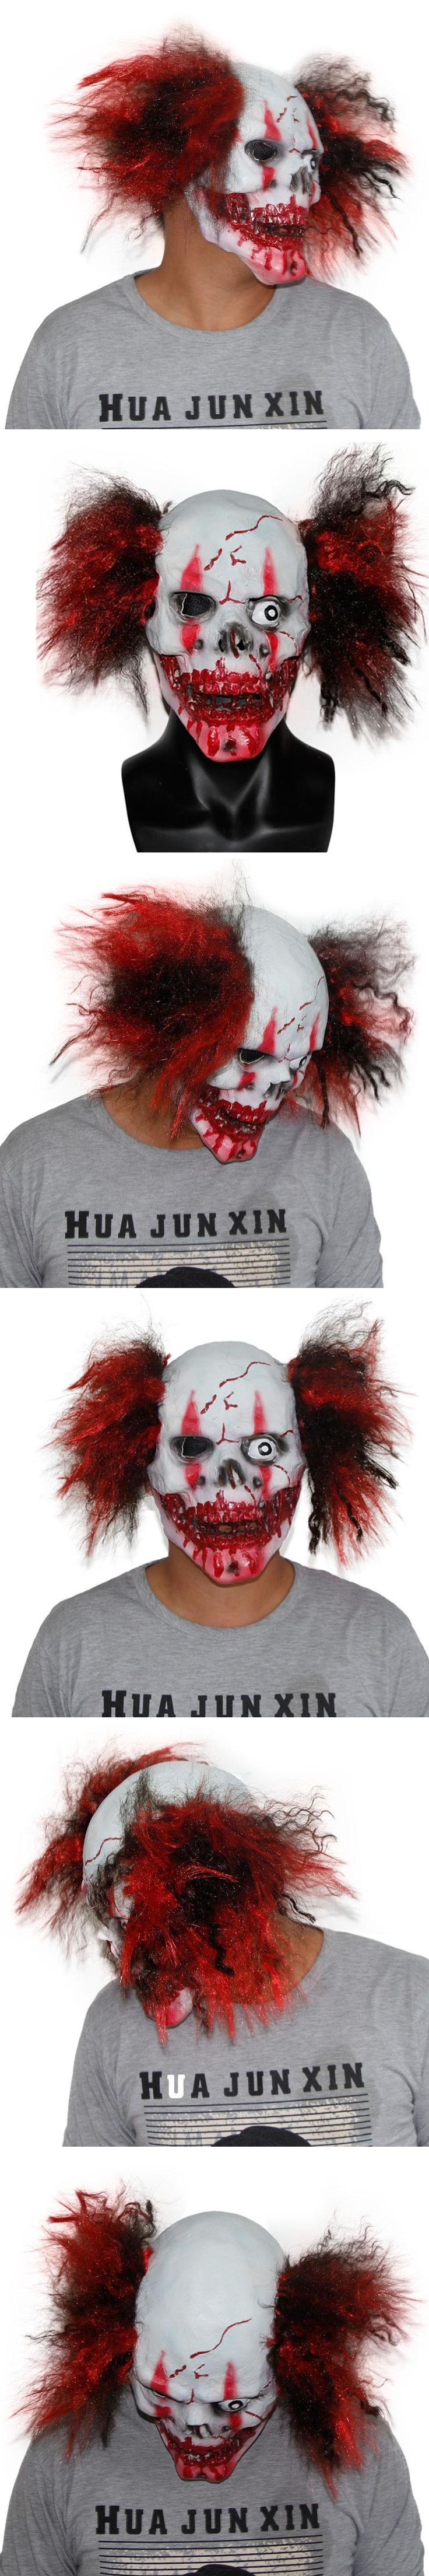 X-MERRY TOY Crazy Scary Clown Bloody Skull Mask With Hair Manic Zombie Mask Halloween Scary Evil Cosplay Props